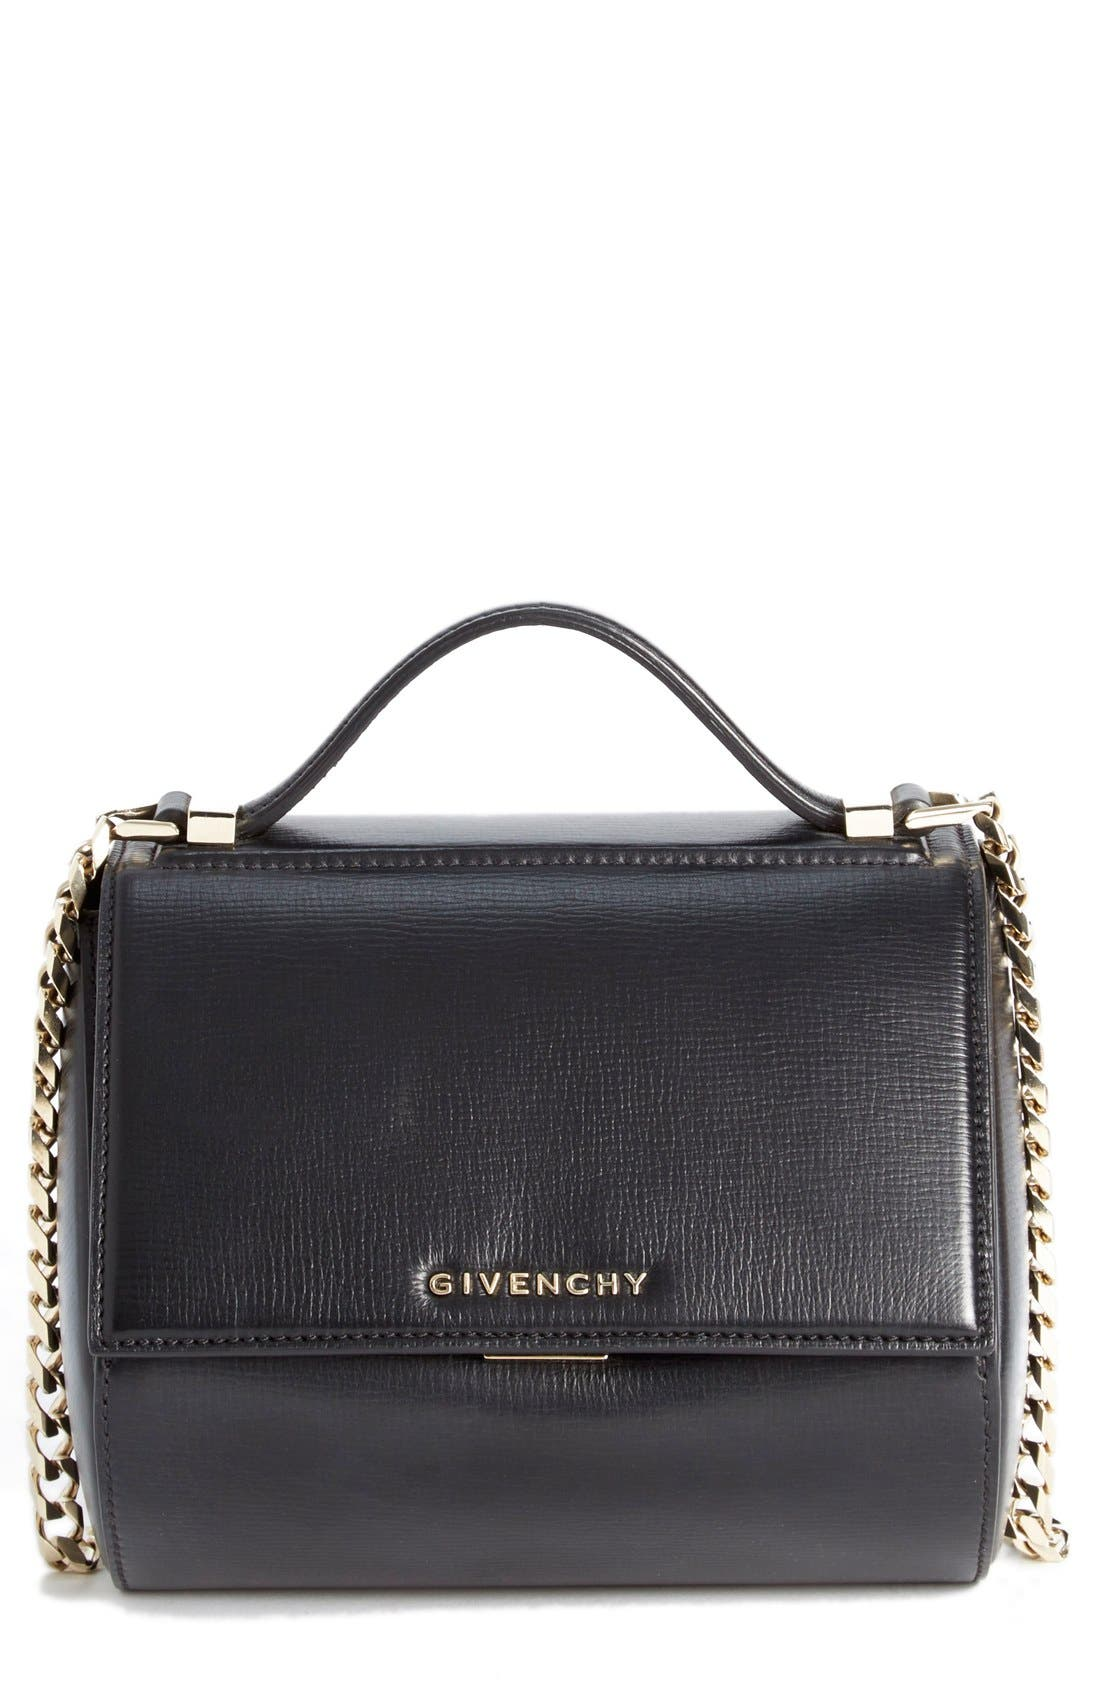 Givenchy 'Mini Pandora Box - Palma' Leather Shoulder Bag